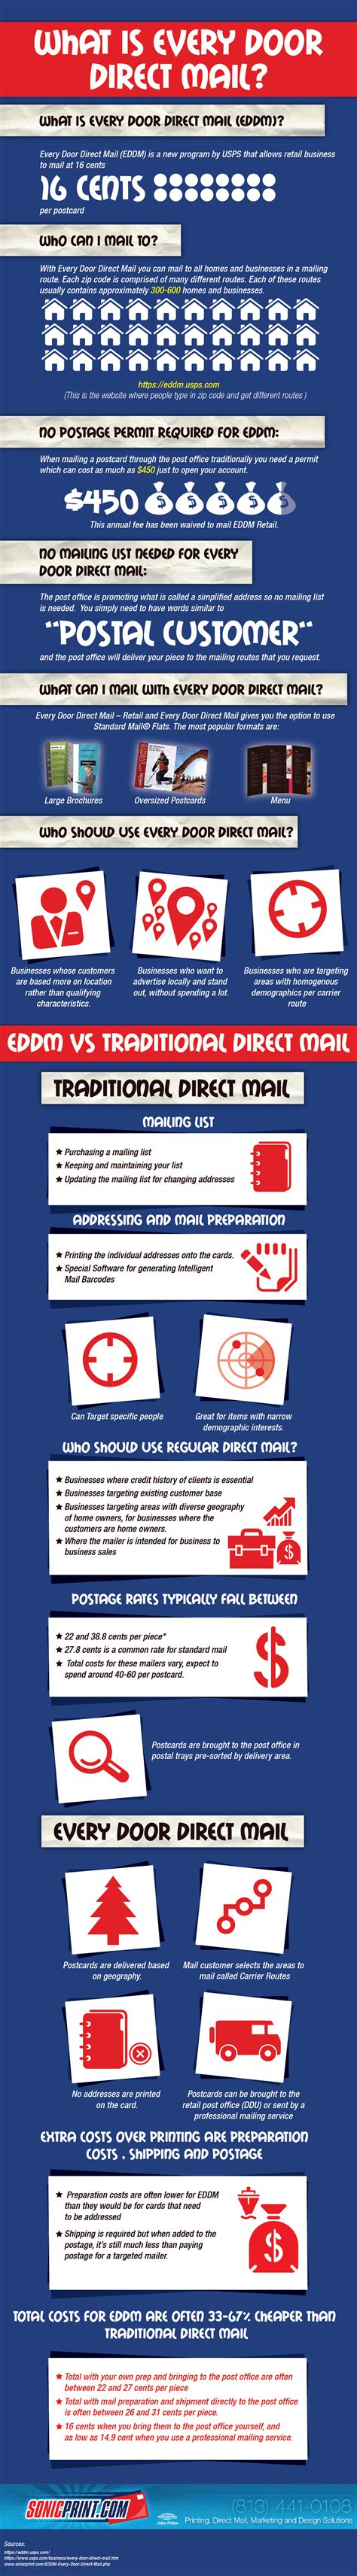 usps every door direct every door direct mail for small business infographic